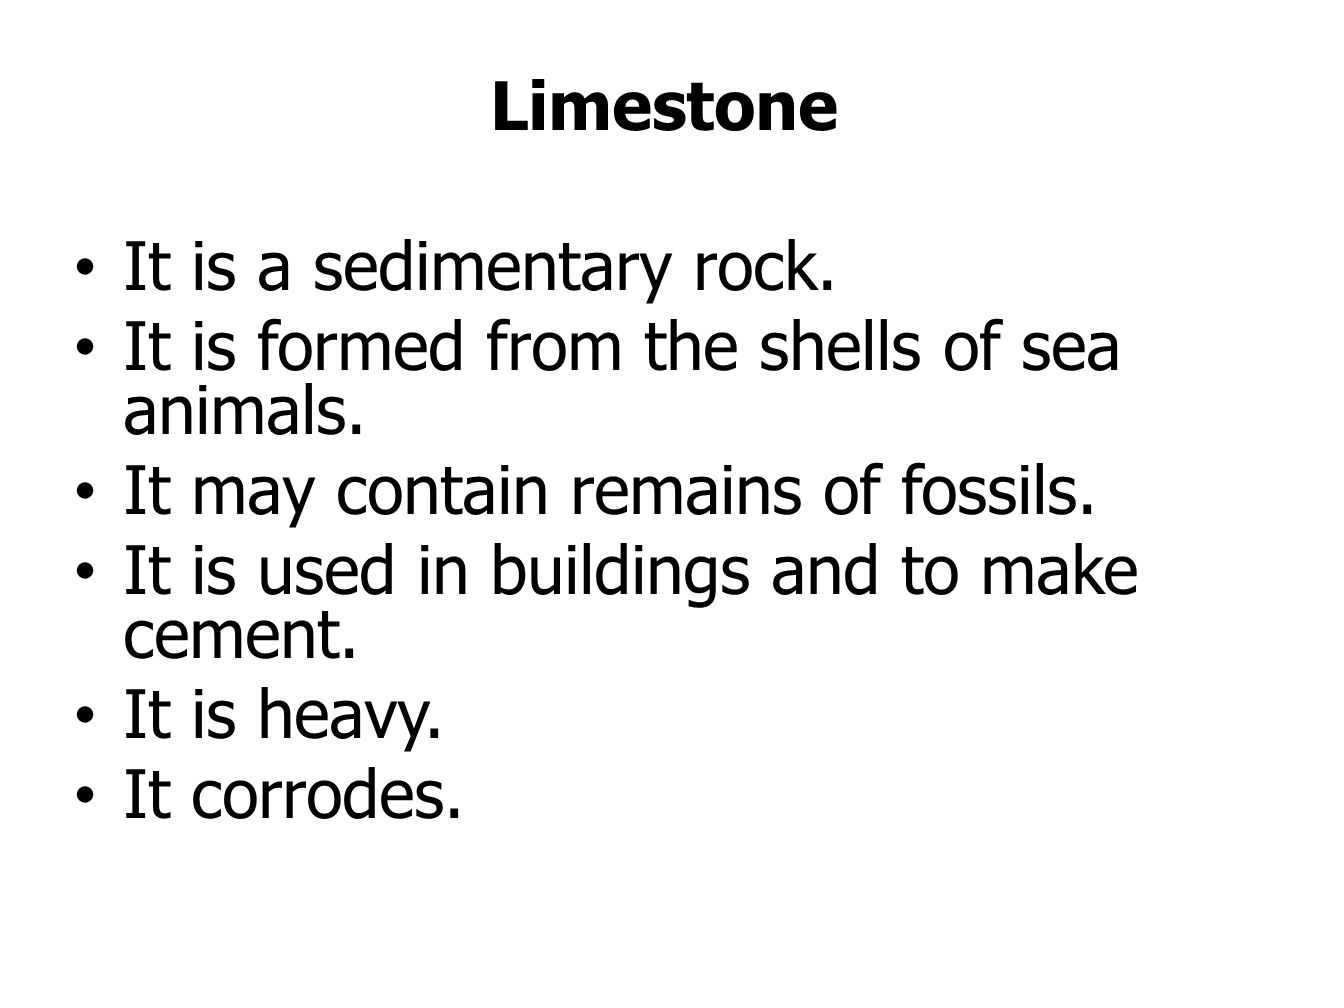 Limestone It is a sedimentary rock. It is formed from the shells of sea animals. It may contain remains of fossils.